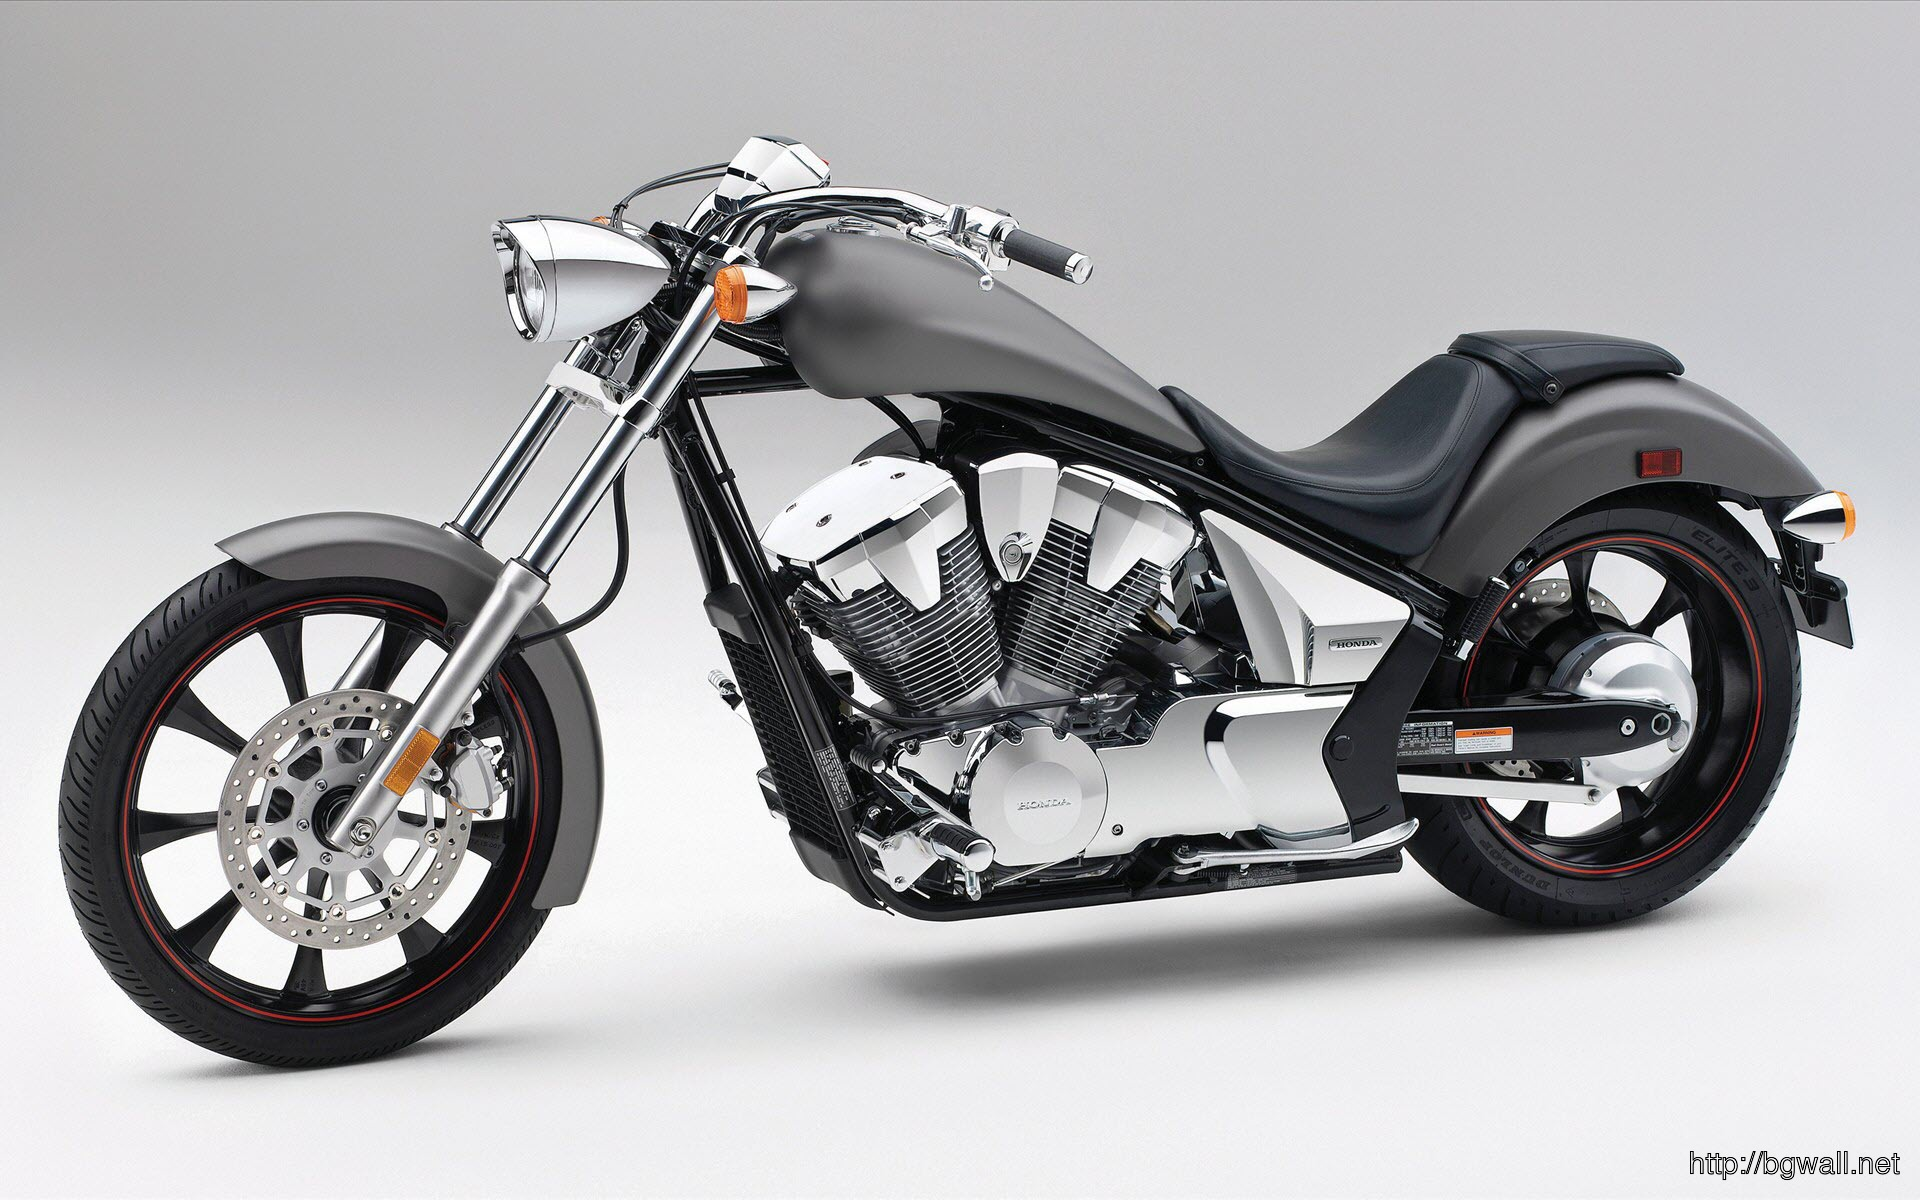 Superb Dark Honda Fury Sports Bike Full Size